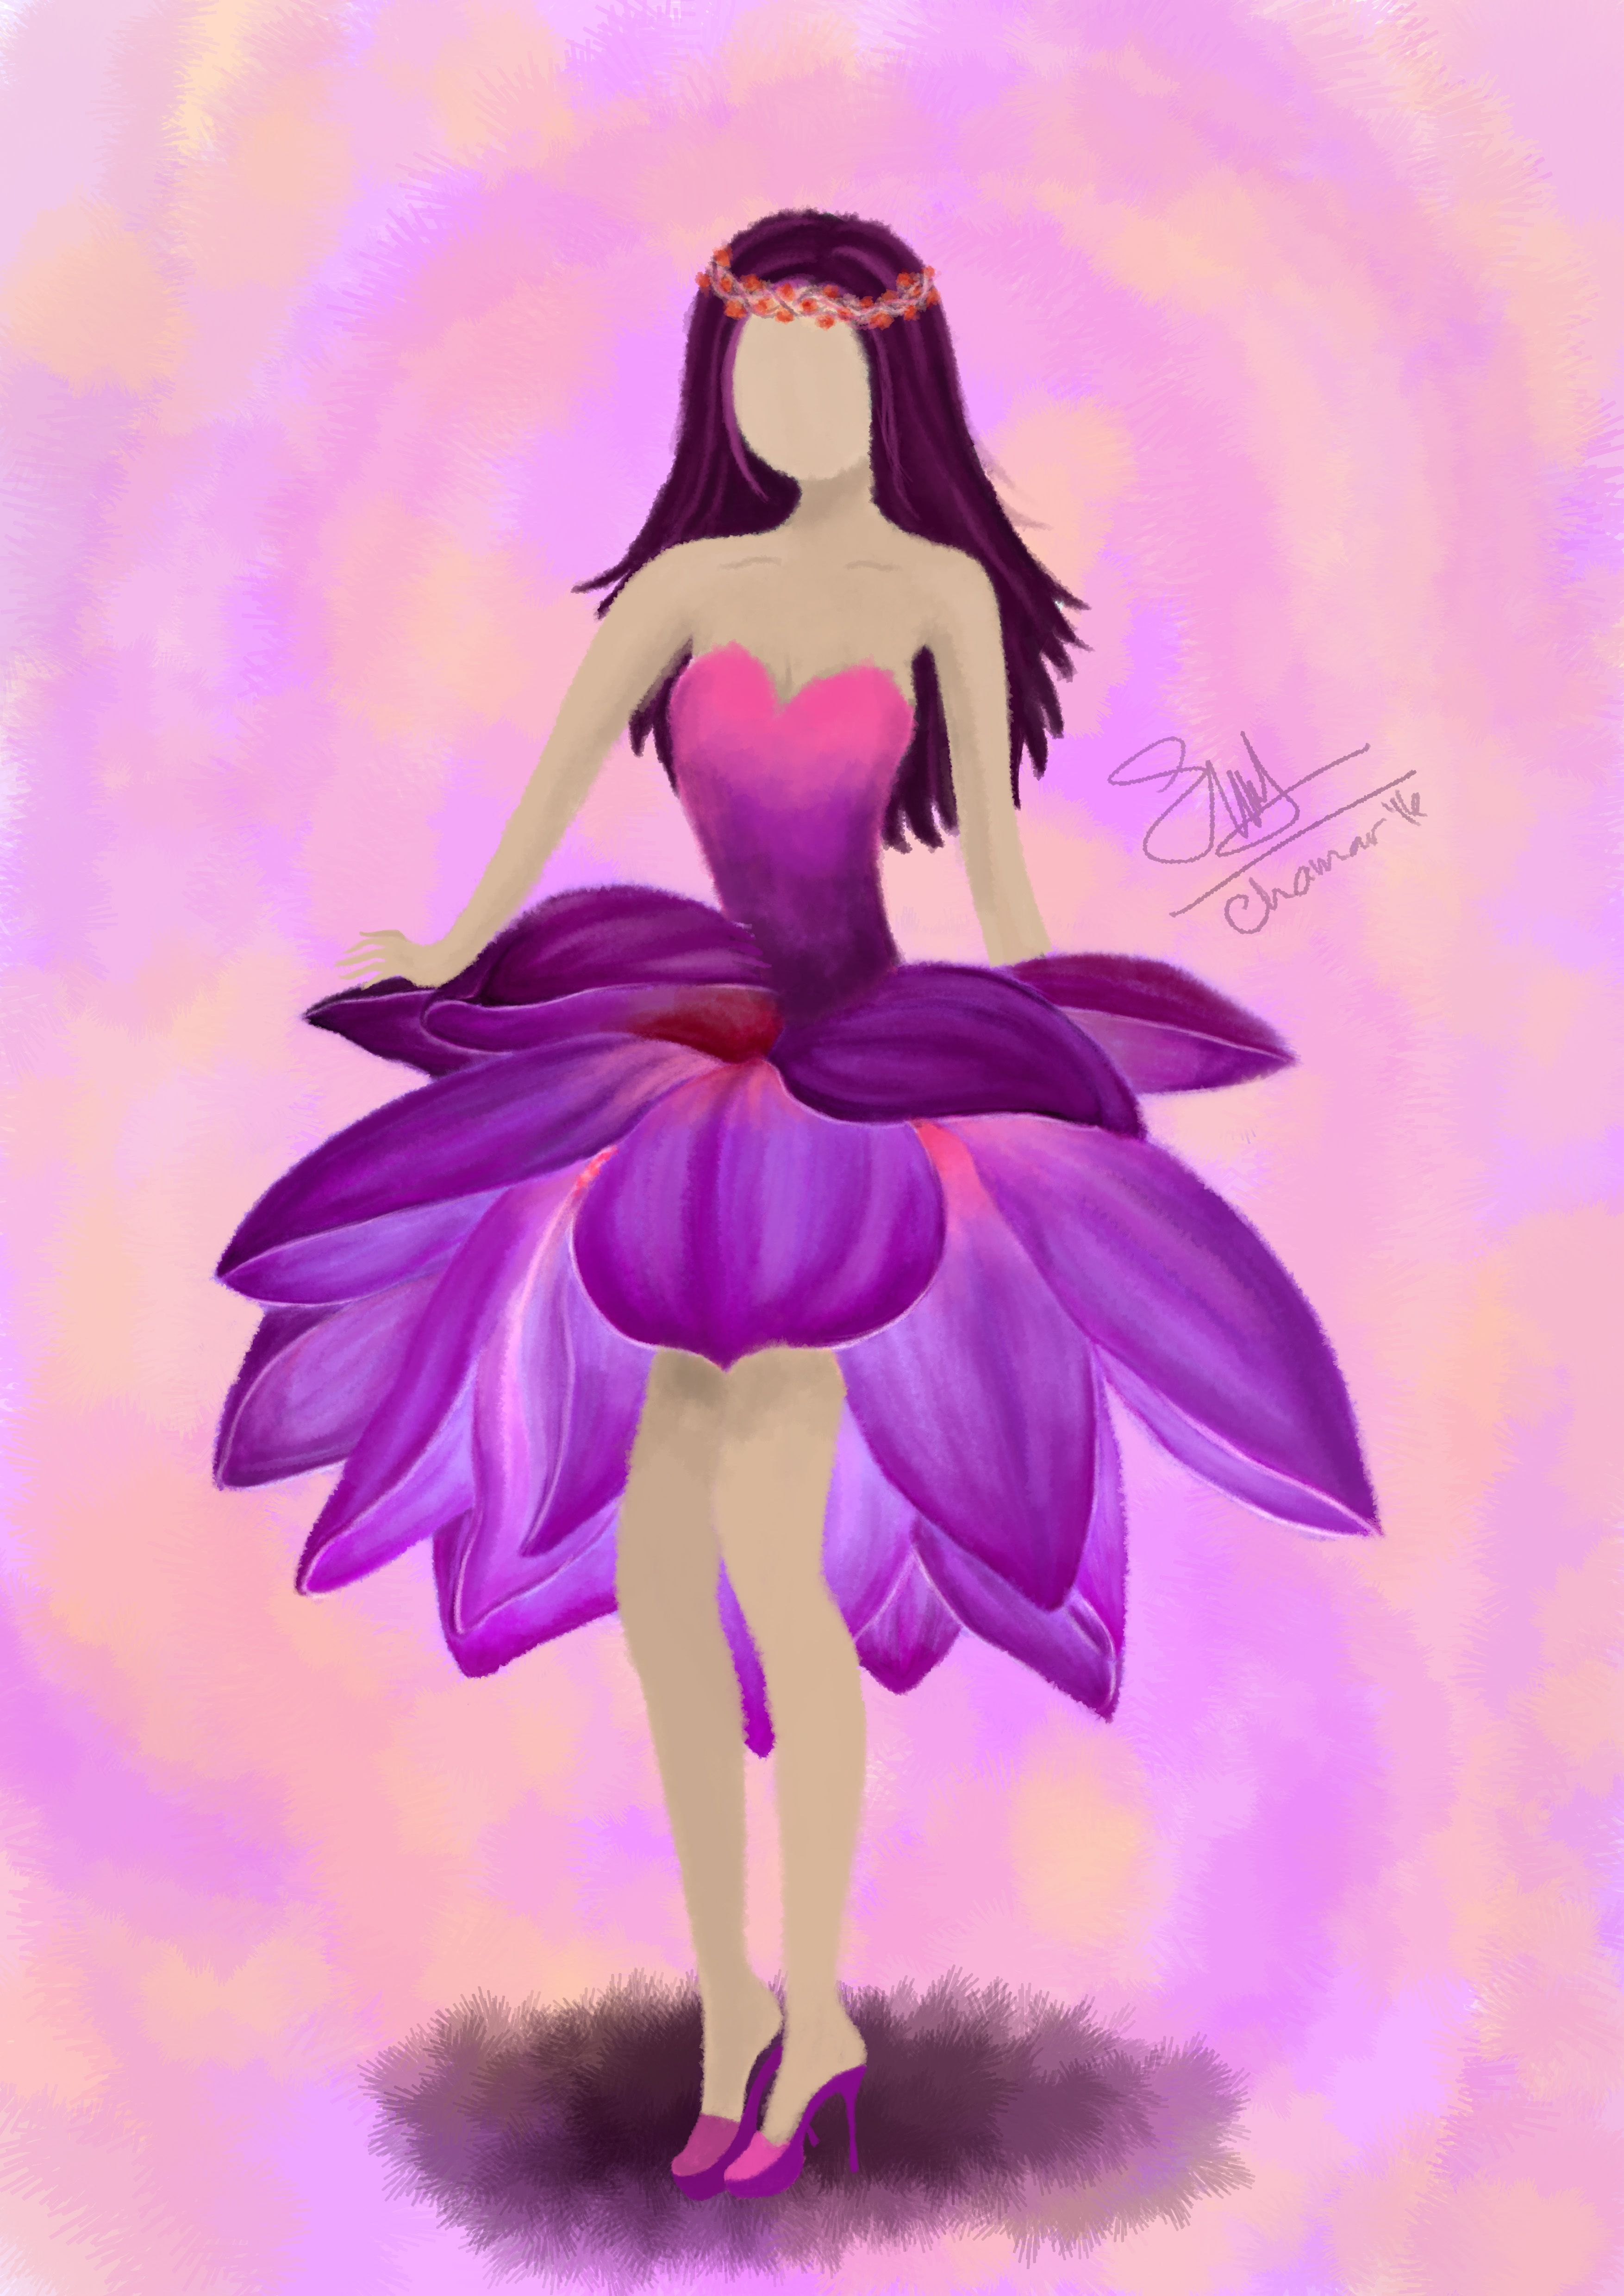 Digital Brush Painting With Photoshop Its A Lotus Dress Digital